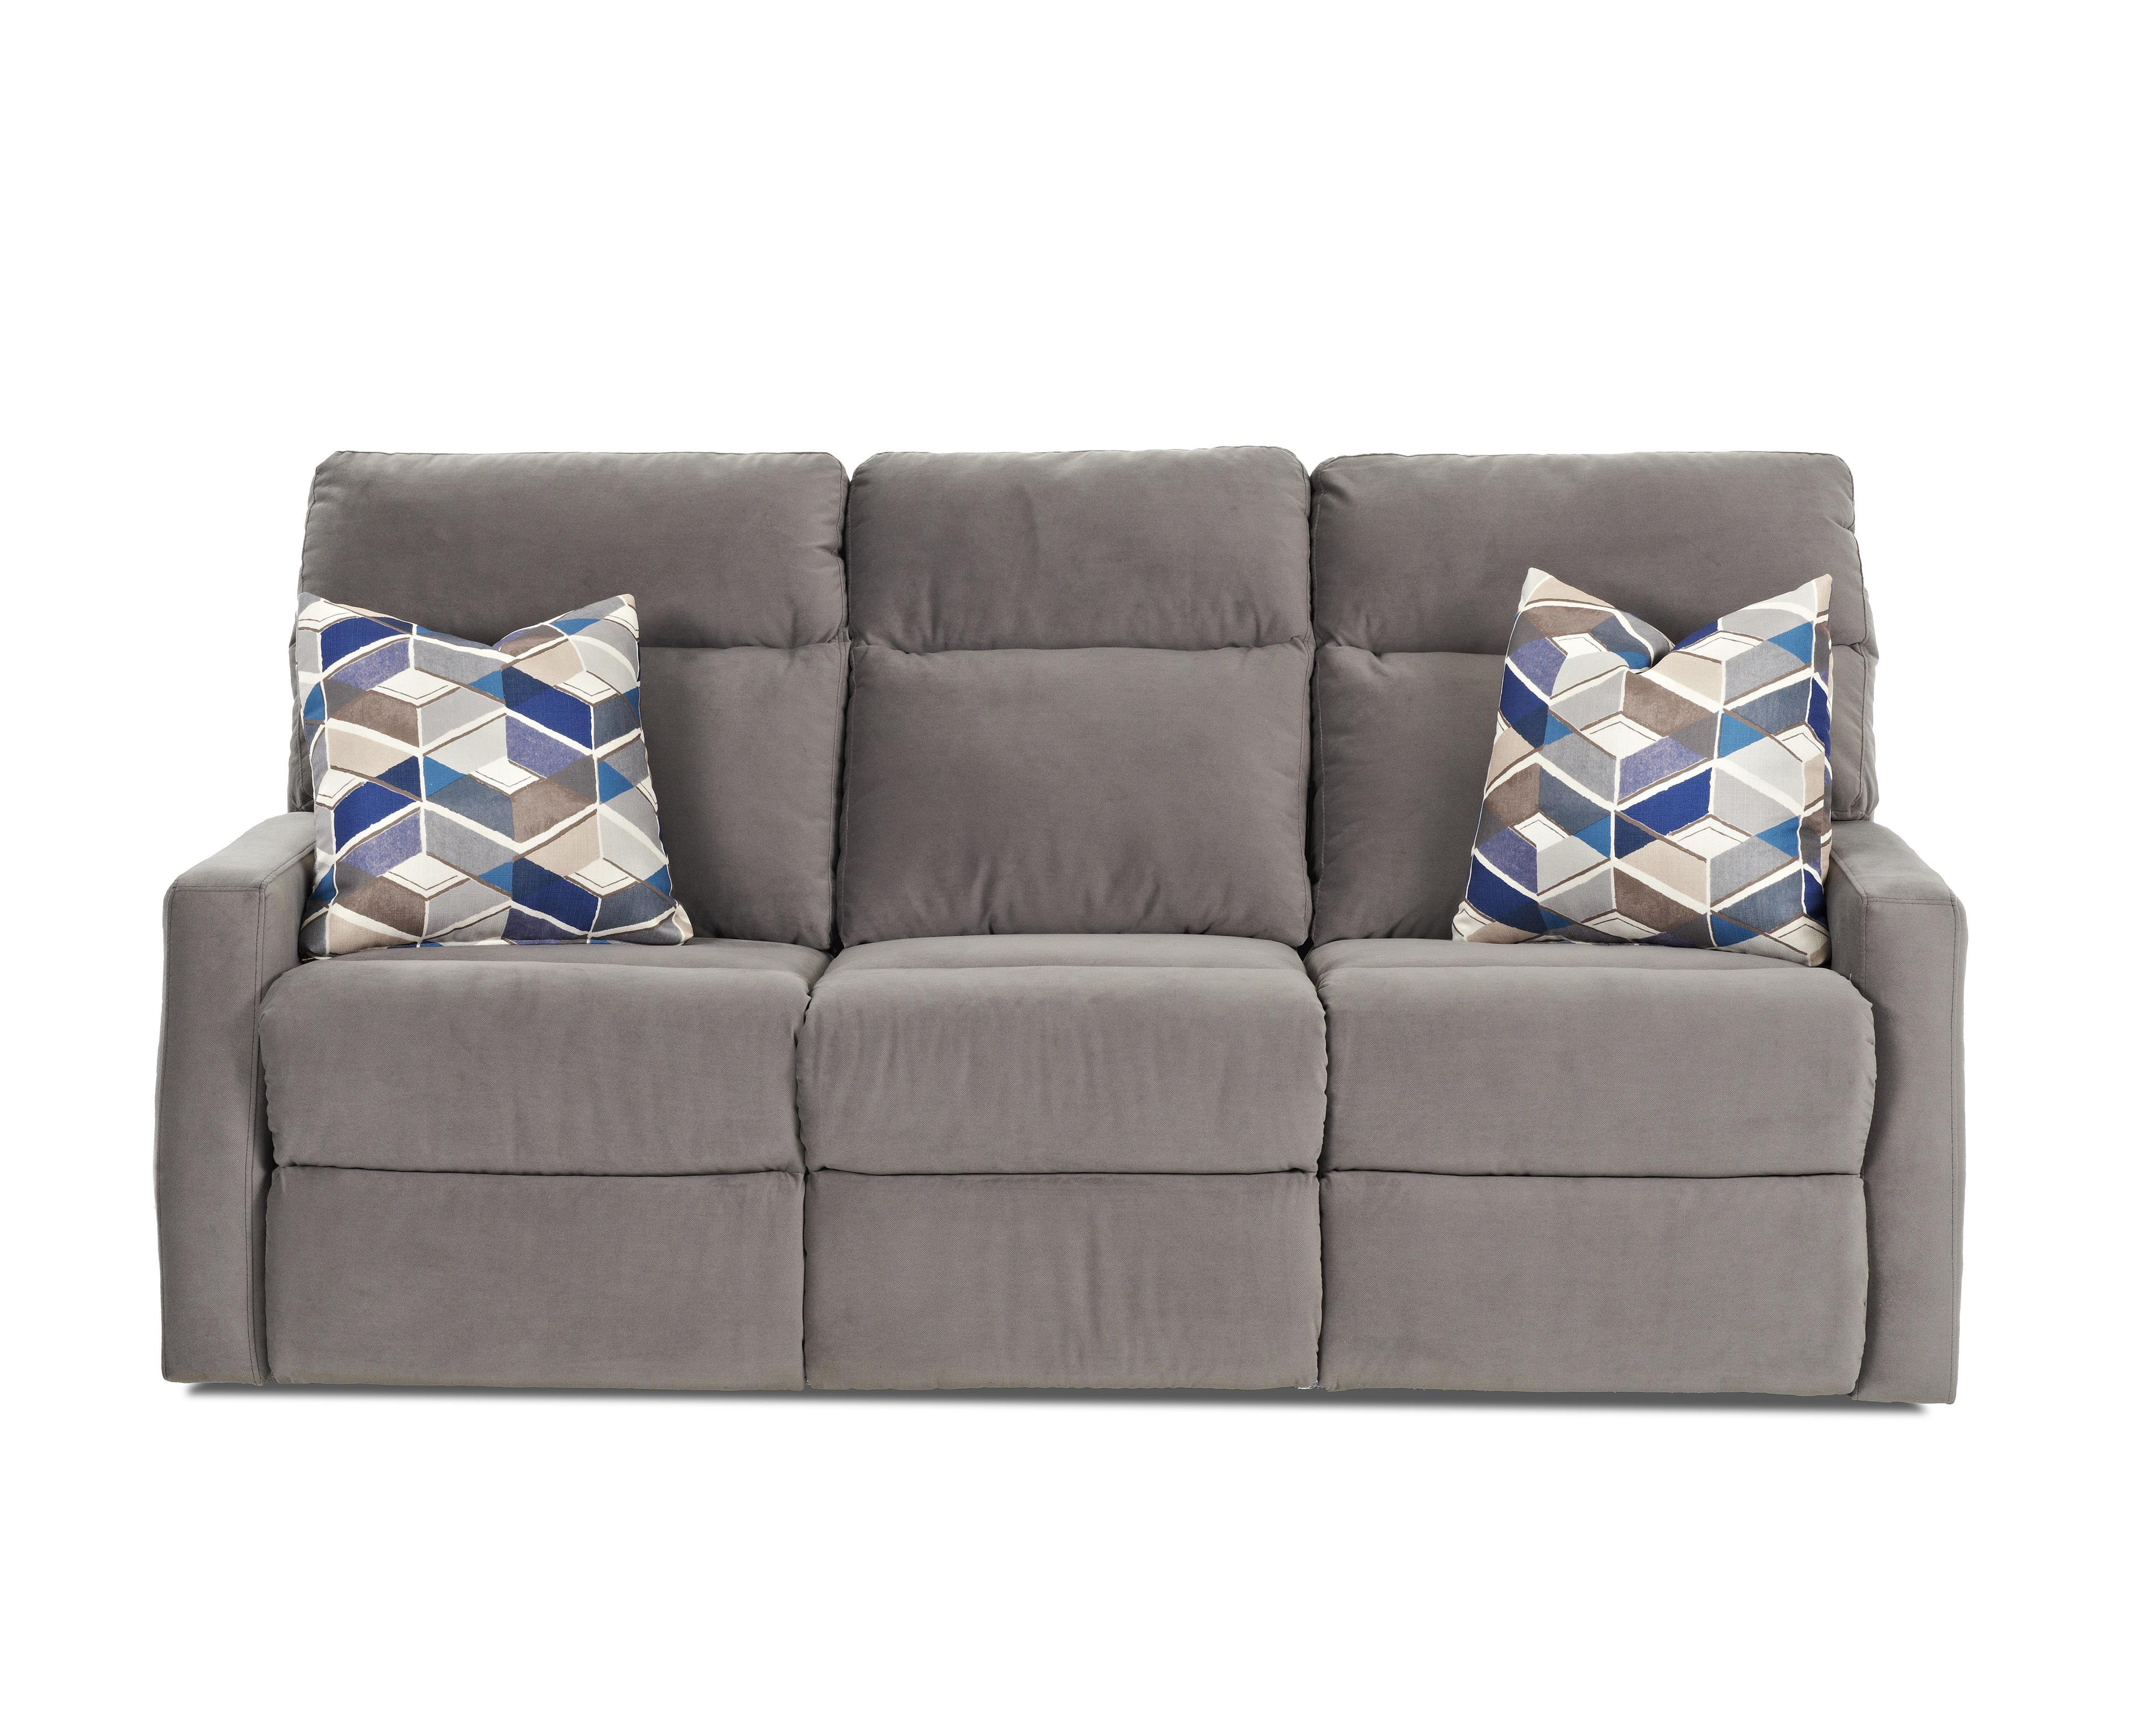 Klaussner Monticello Reclining Sofa w/ Pillows - Item Number: 41503P RS-OAKL-GRAP